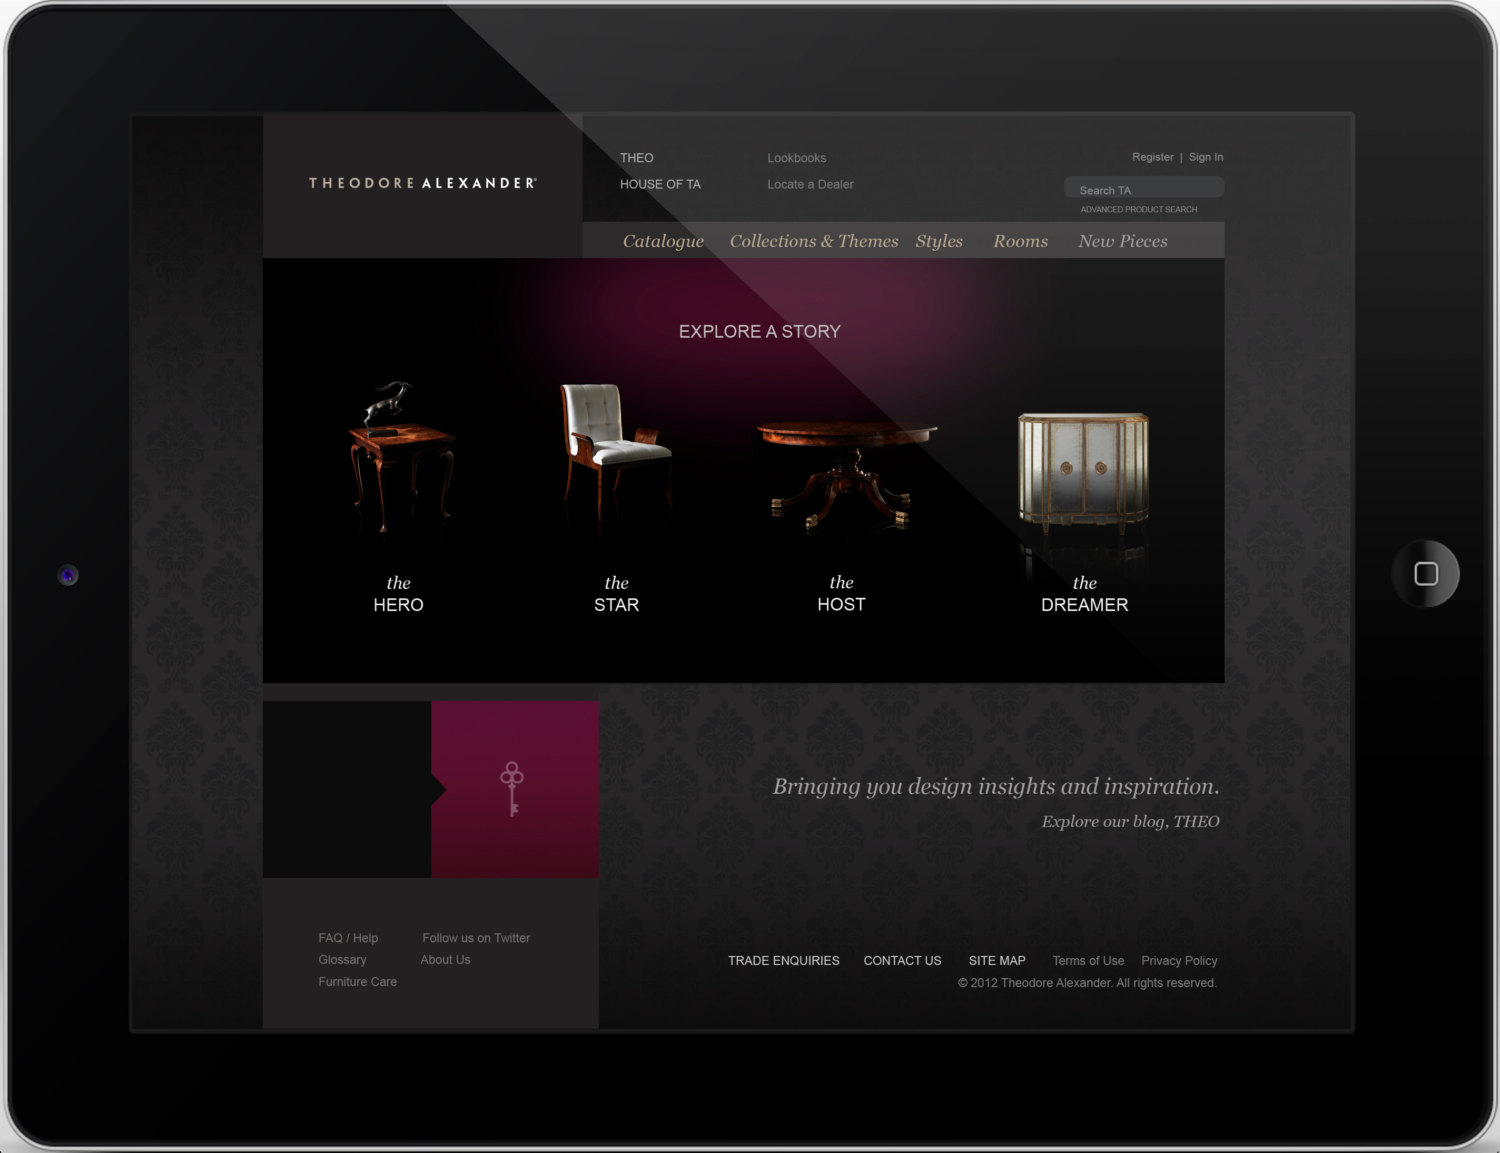 FURNITURE WEBSITE DESIGN SERVICE